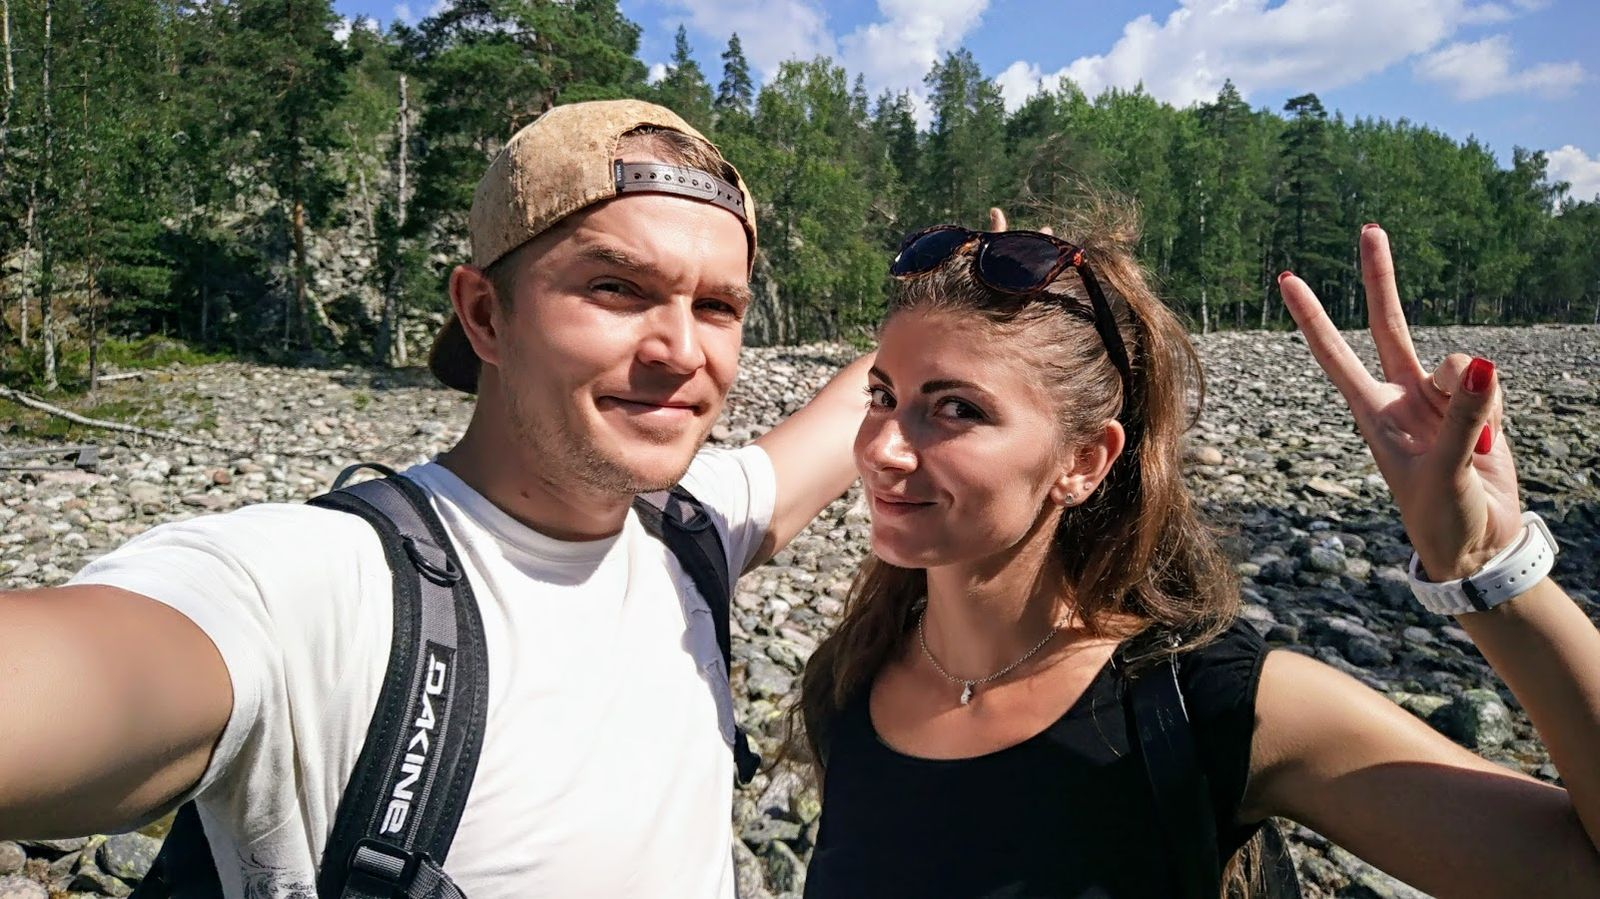 Hello, here we are. Alex and Tanja :)